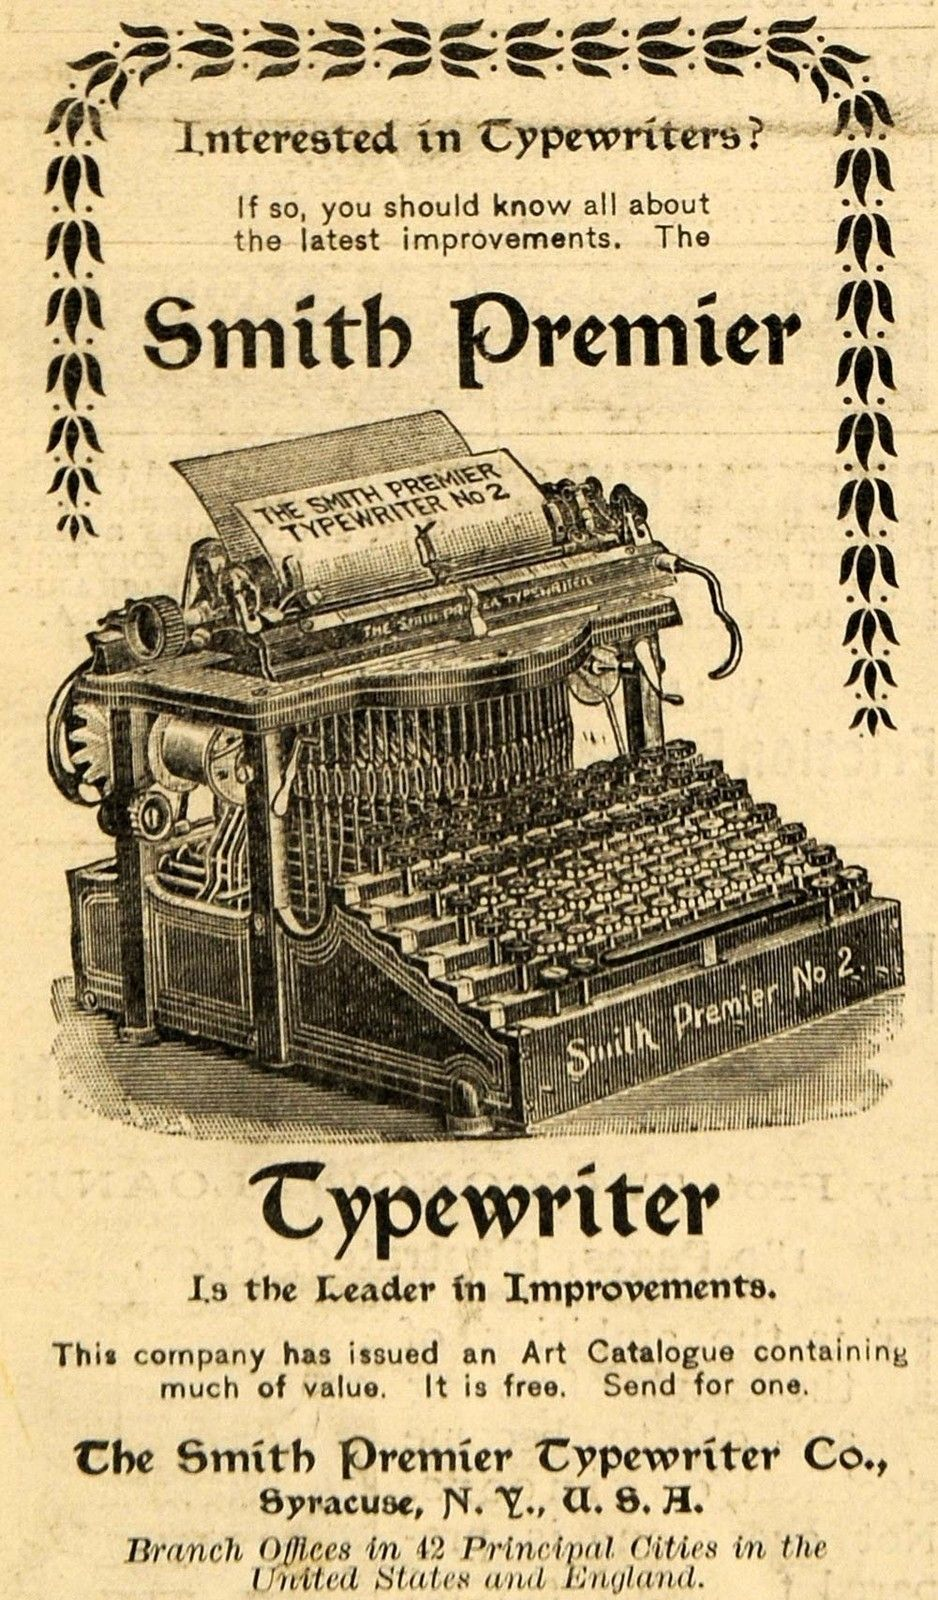 1898 Ad for Antique Smith Premier Typewriter Writing ...